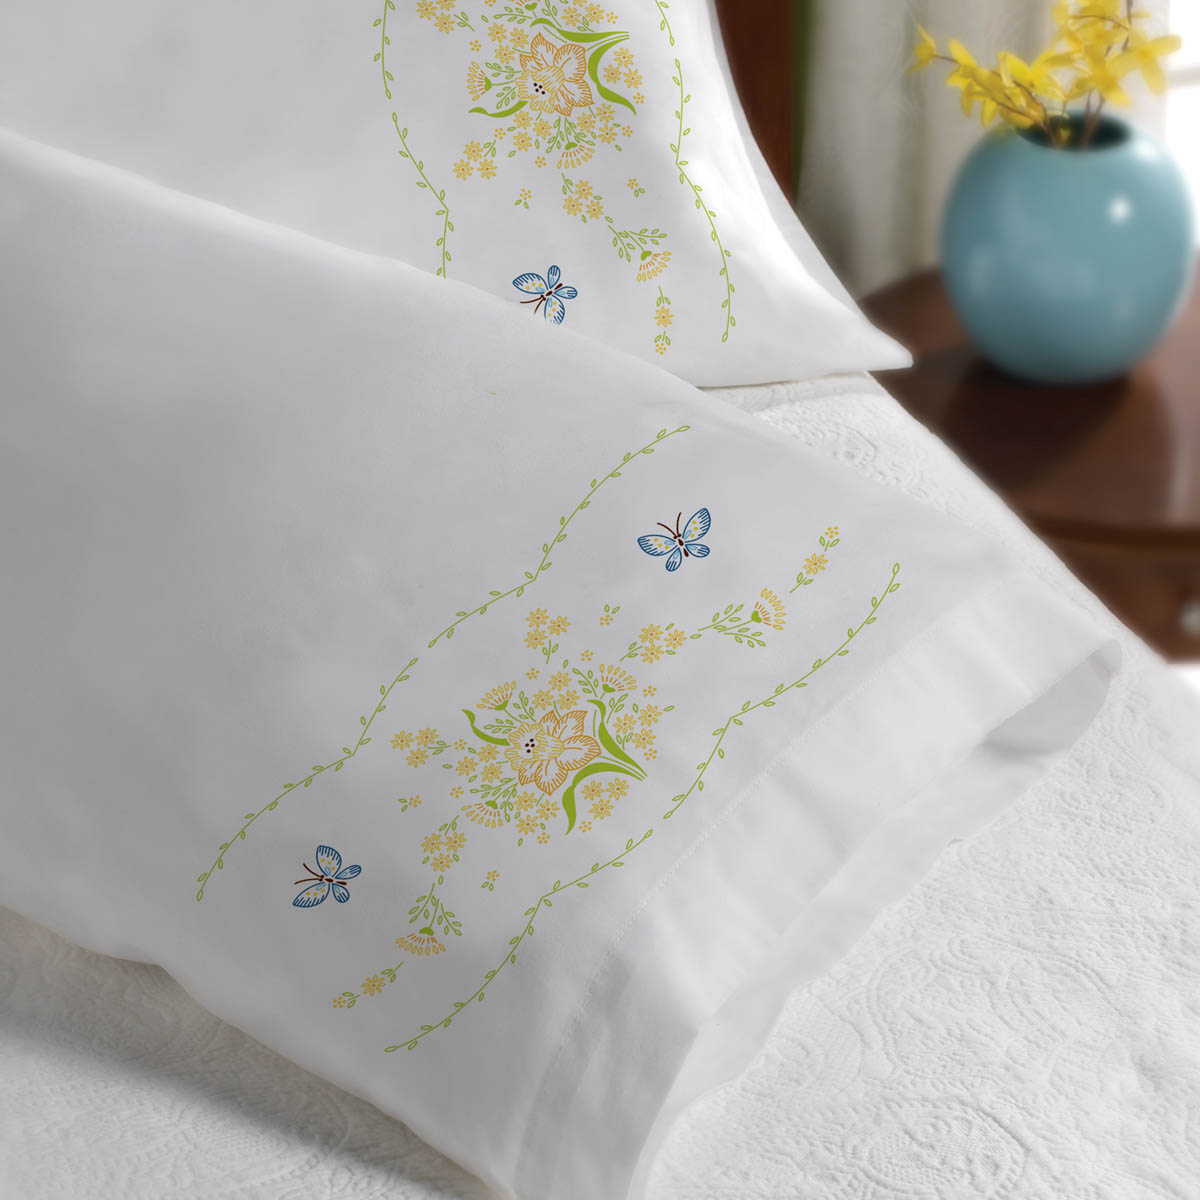 Bucilla ® Stamped Cross Stitch & Embroidery - Pillowcase Pairs - Daffodil Bouquet